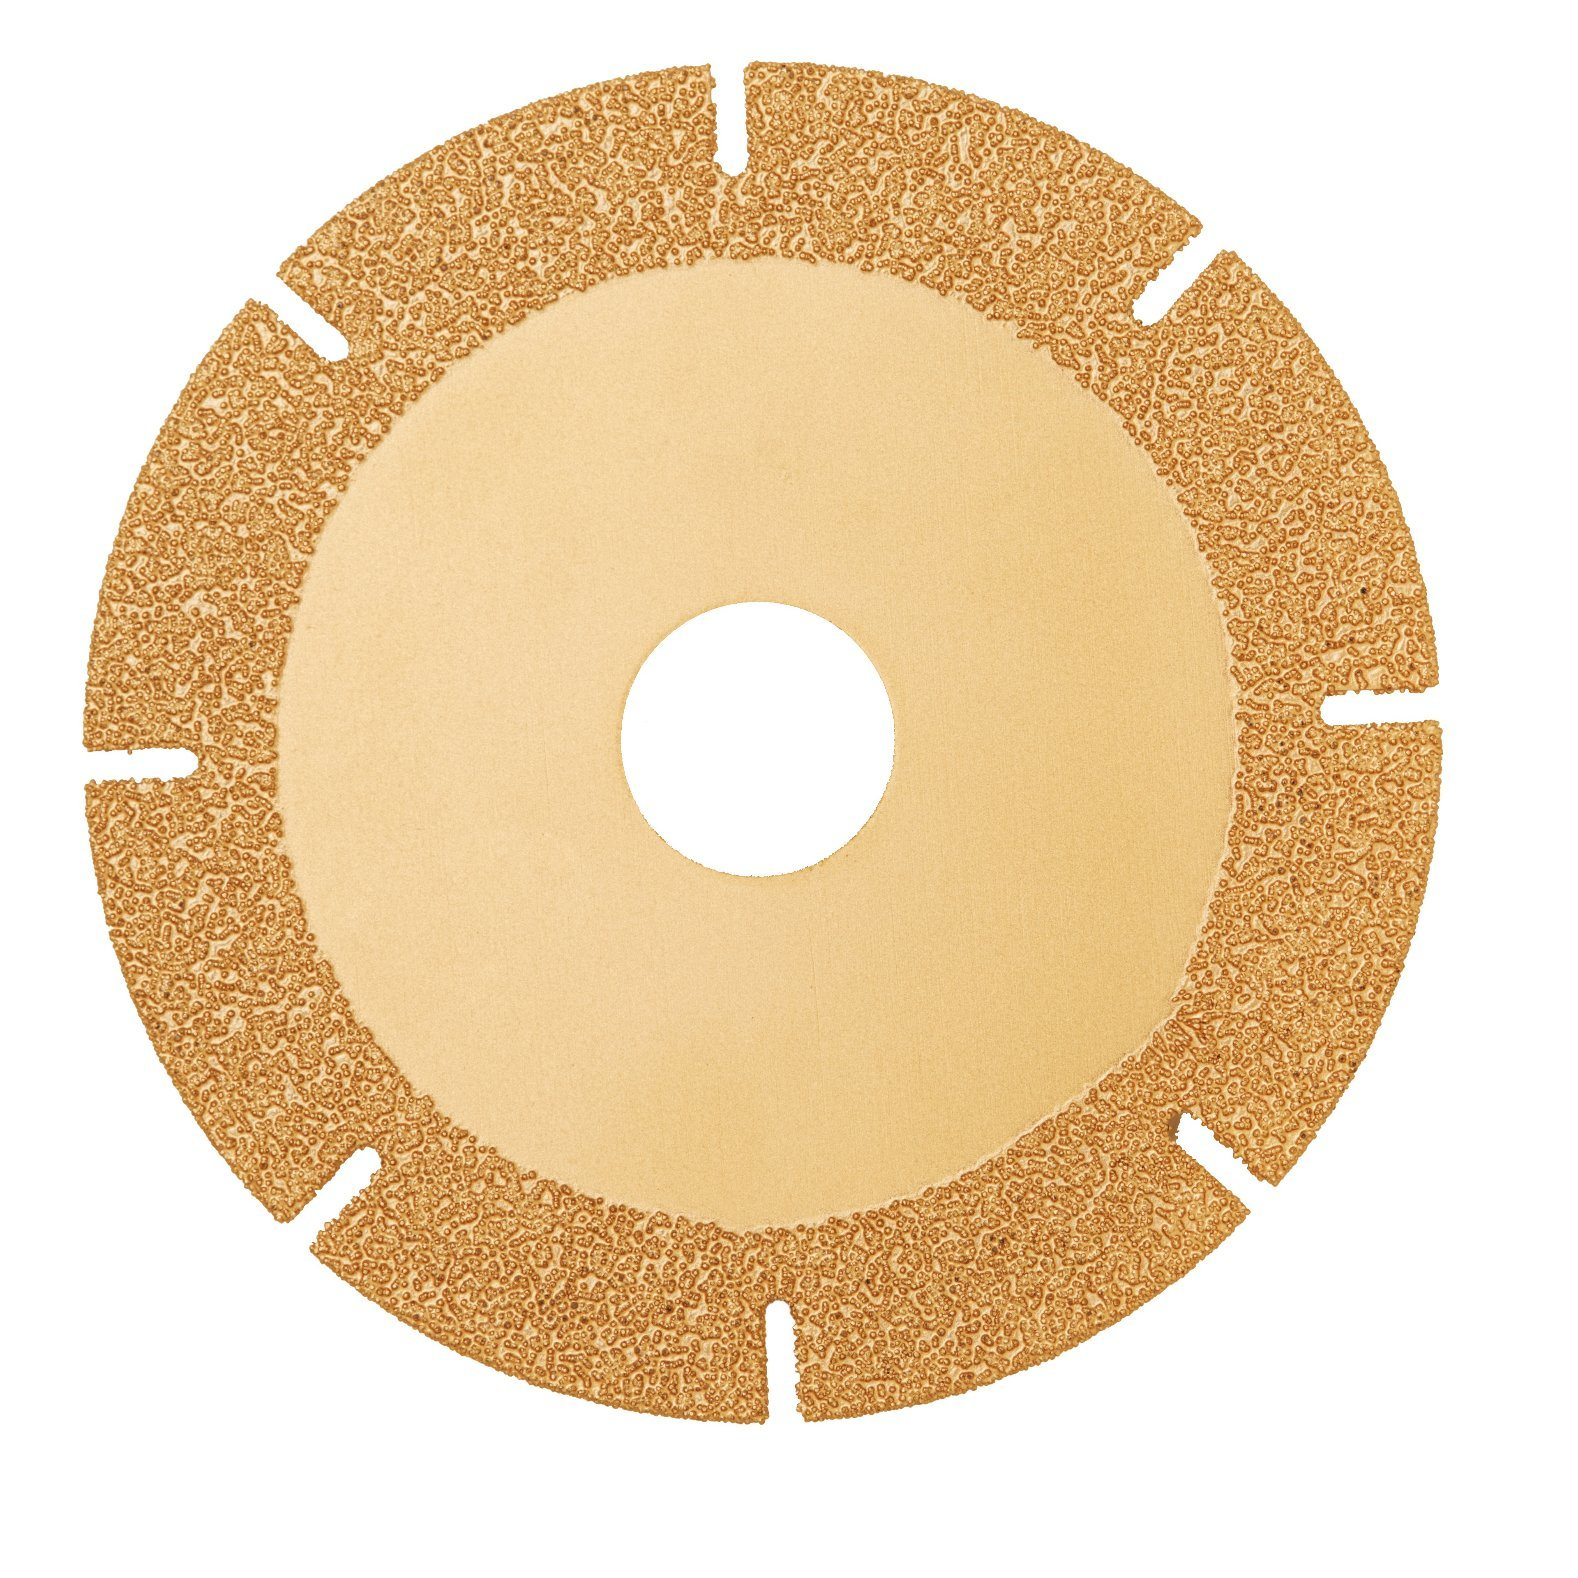 Diamond Cutting and Grinding Wheel Disc Tools for Marble Artifical Stone Ceramic Tiles